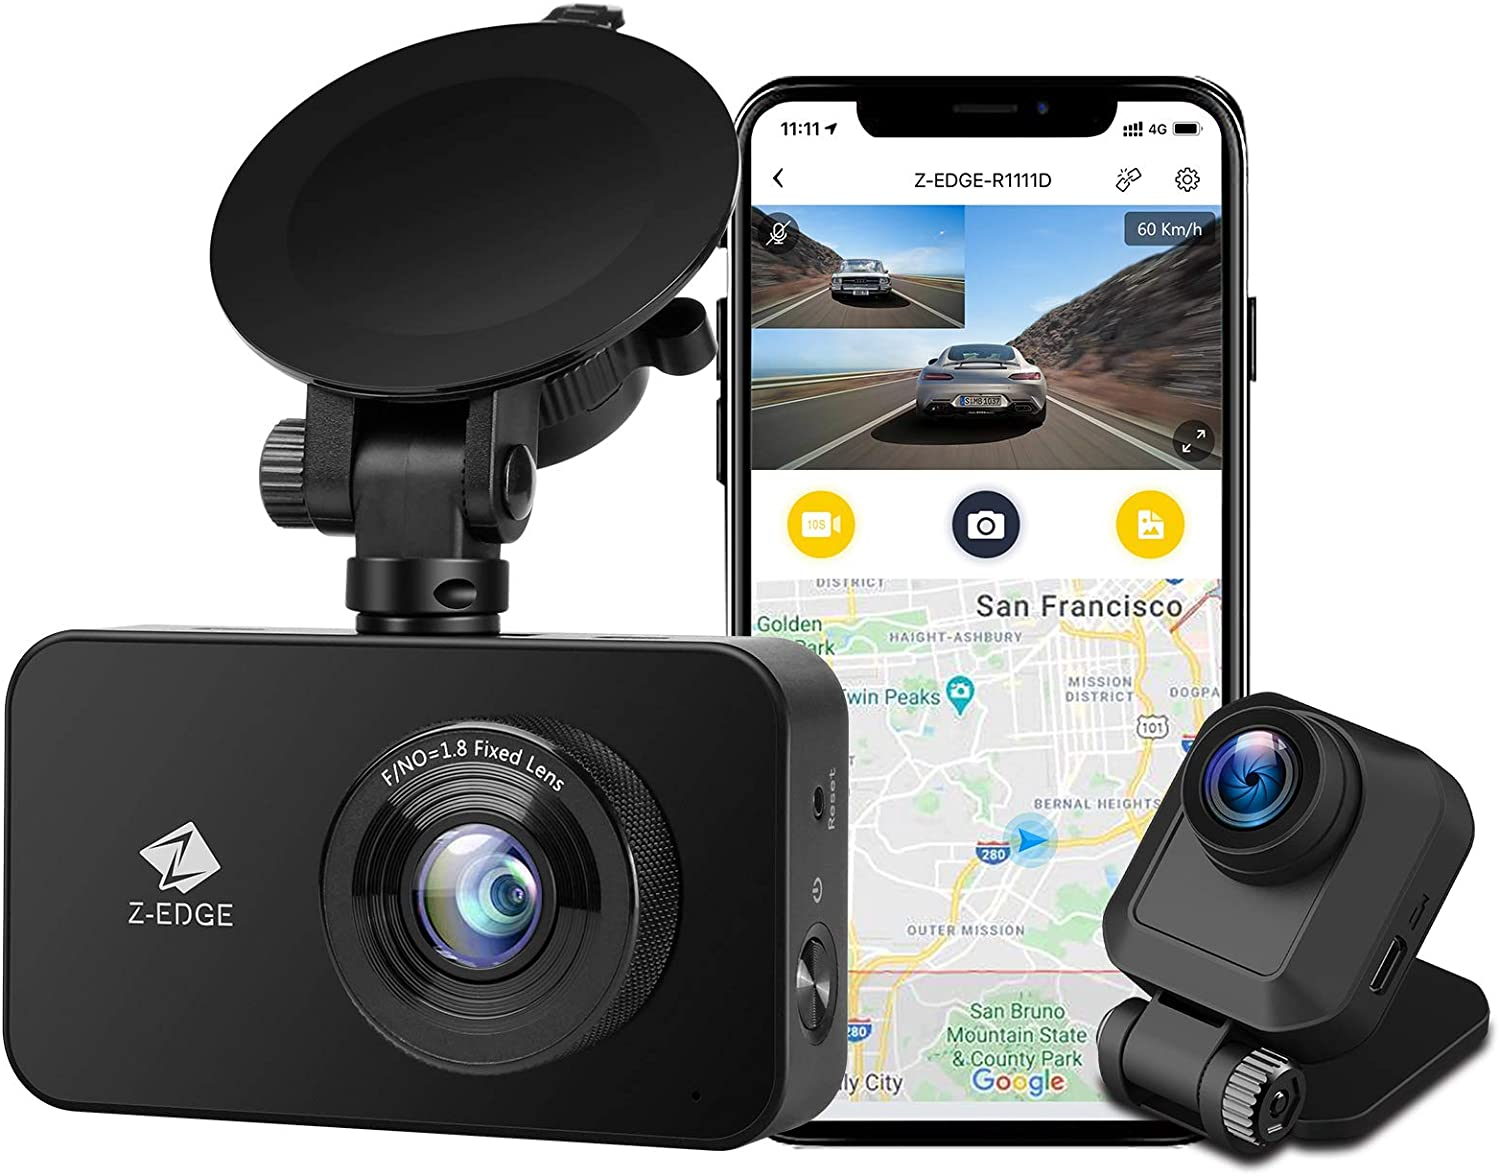 Z-Edge Dual Dash Cam Built-in Wi-Fi, Dual 1920x1080P FHD, Front and Rear Dash Cam with WDR, Night Vision, Parking Mode, G-Sensor, Loop Recording, Support 256GB Max